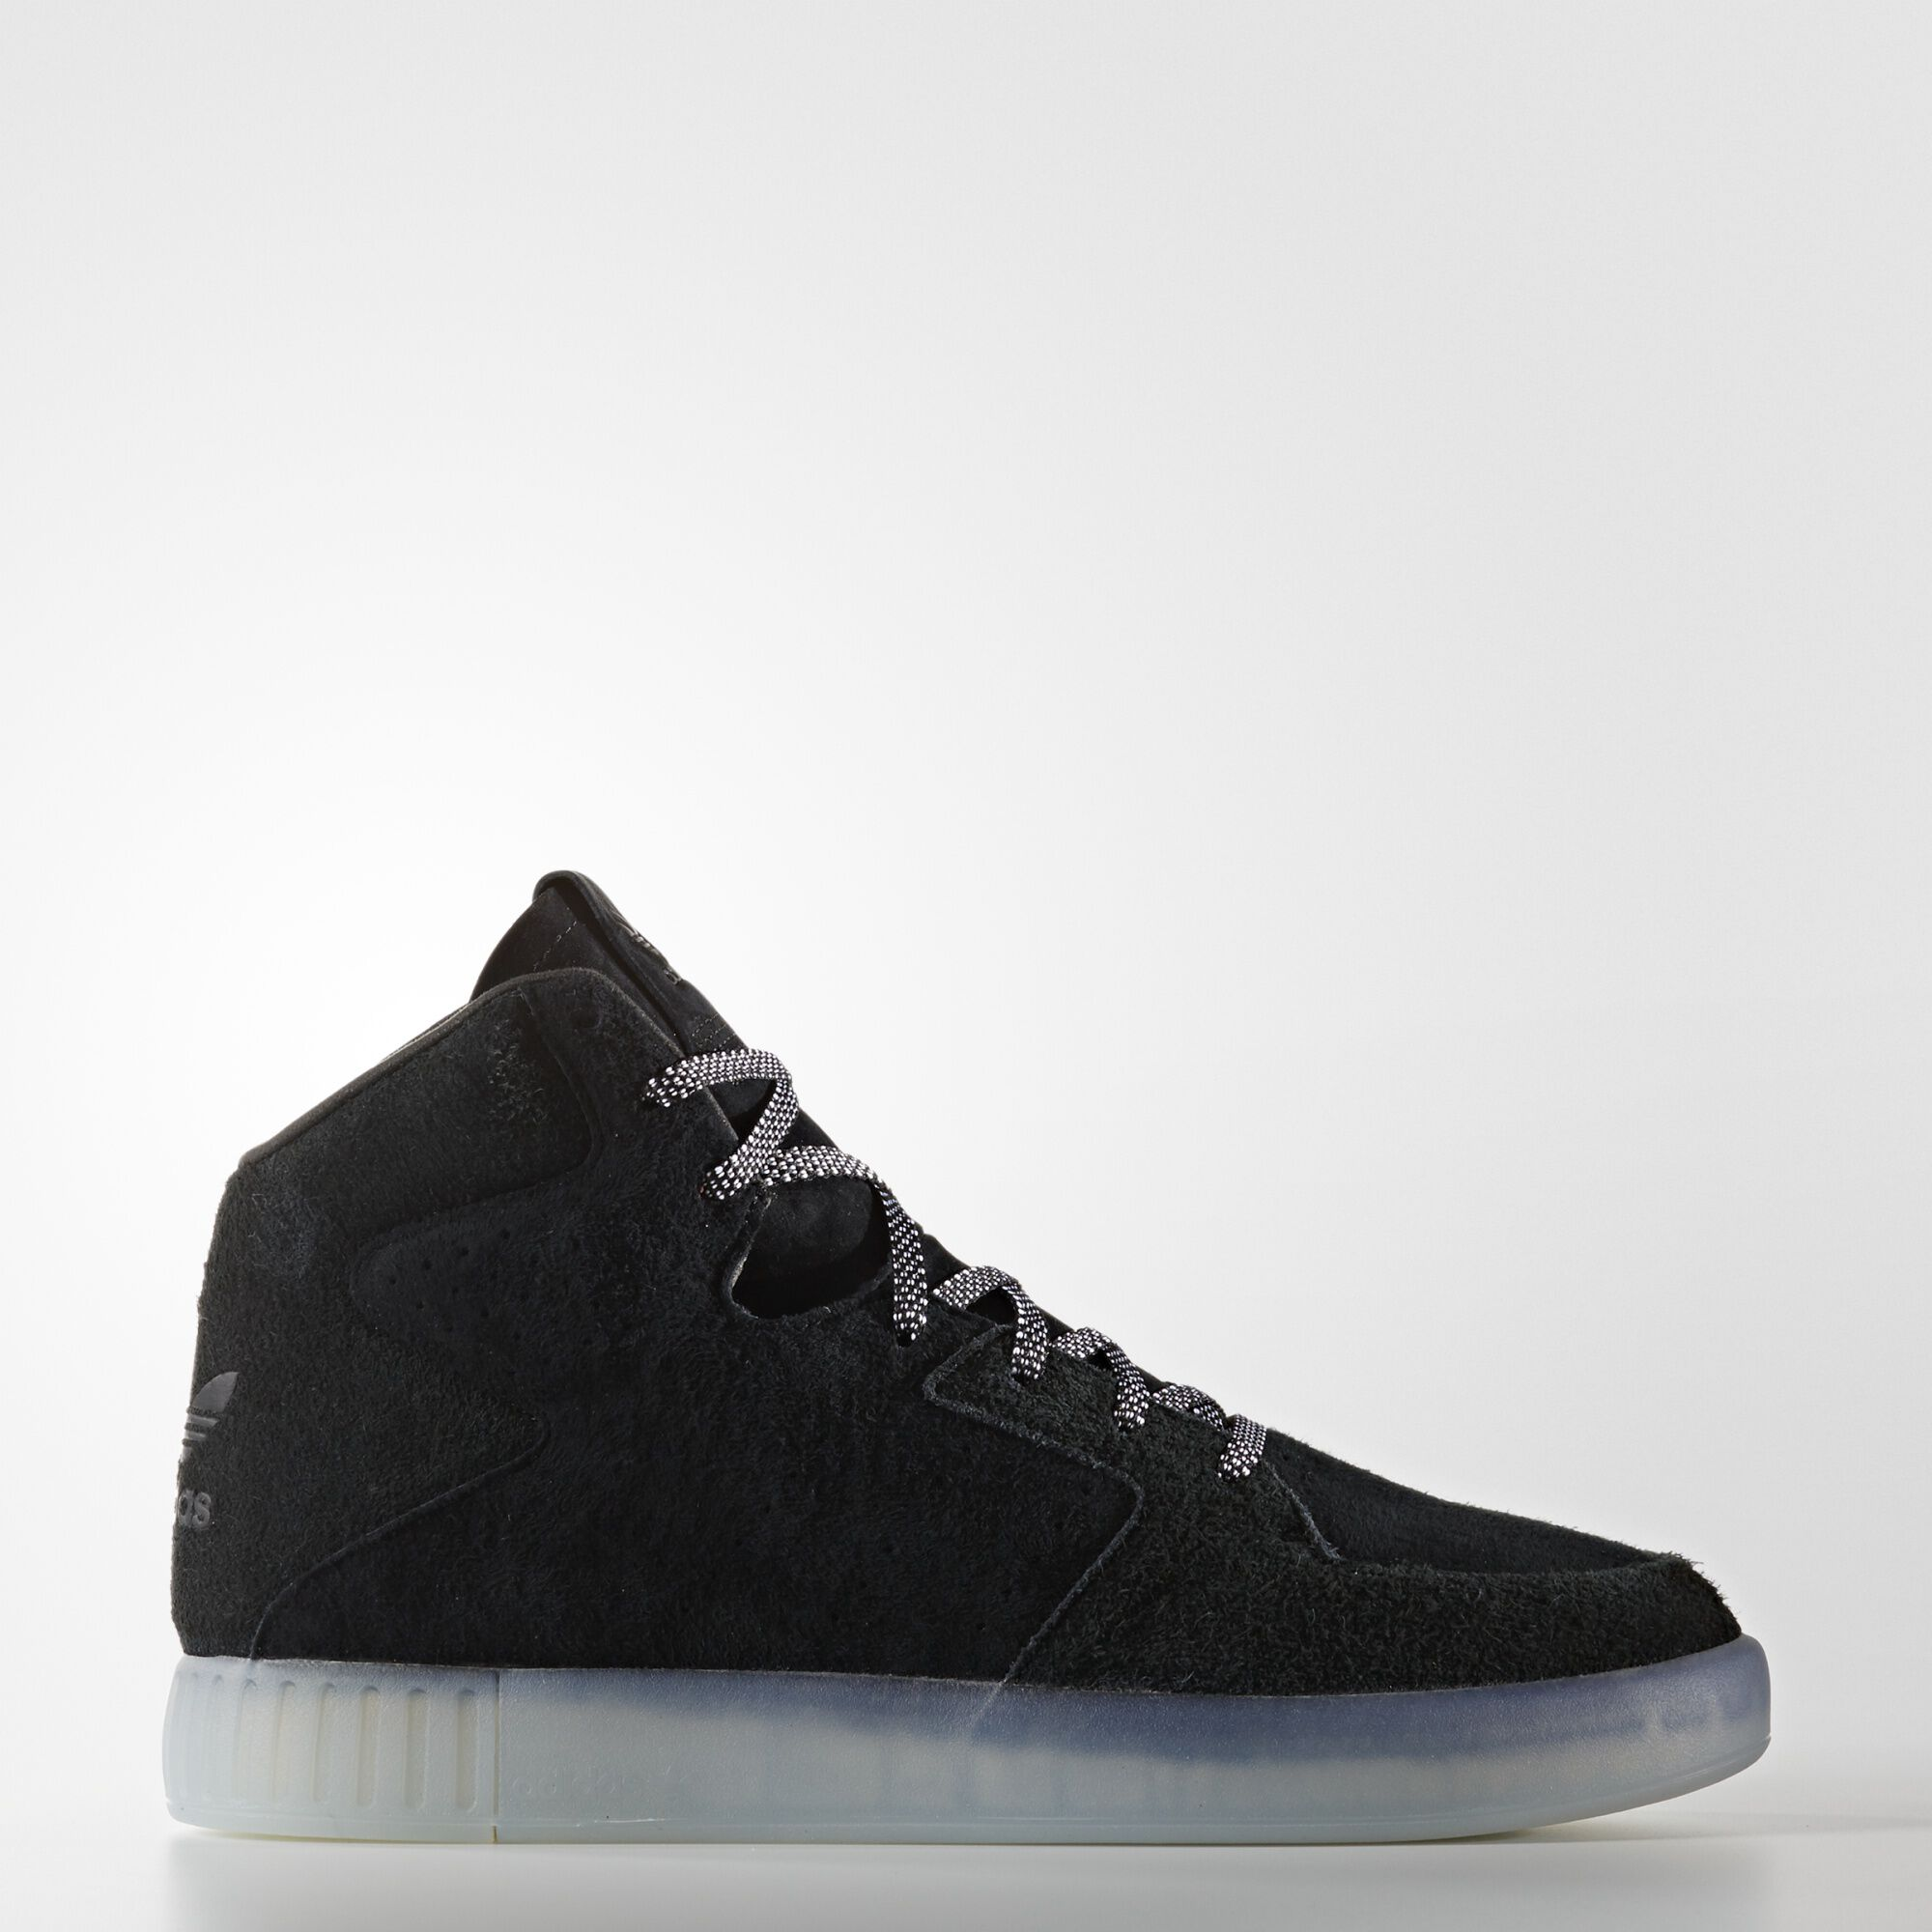 Adidas Tubular All Black High Top